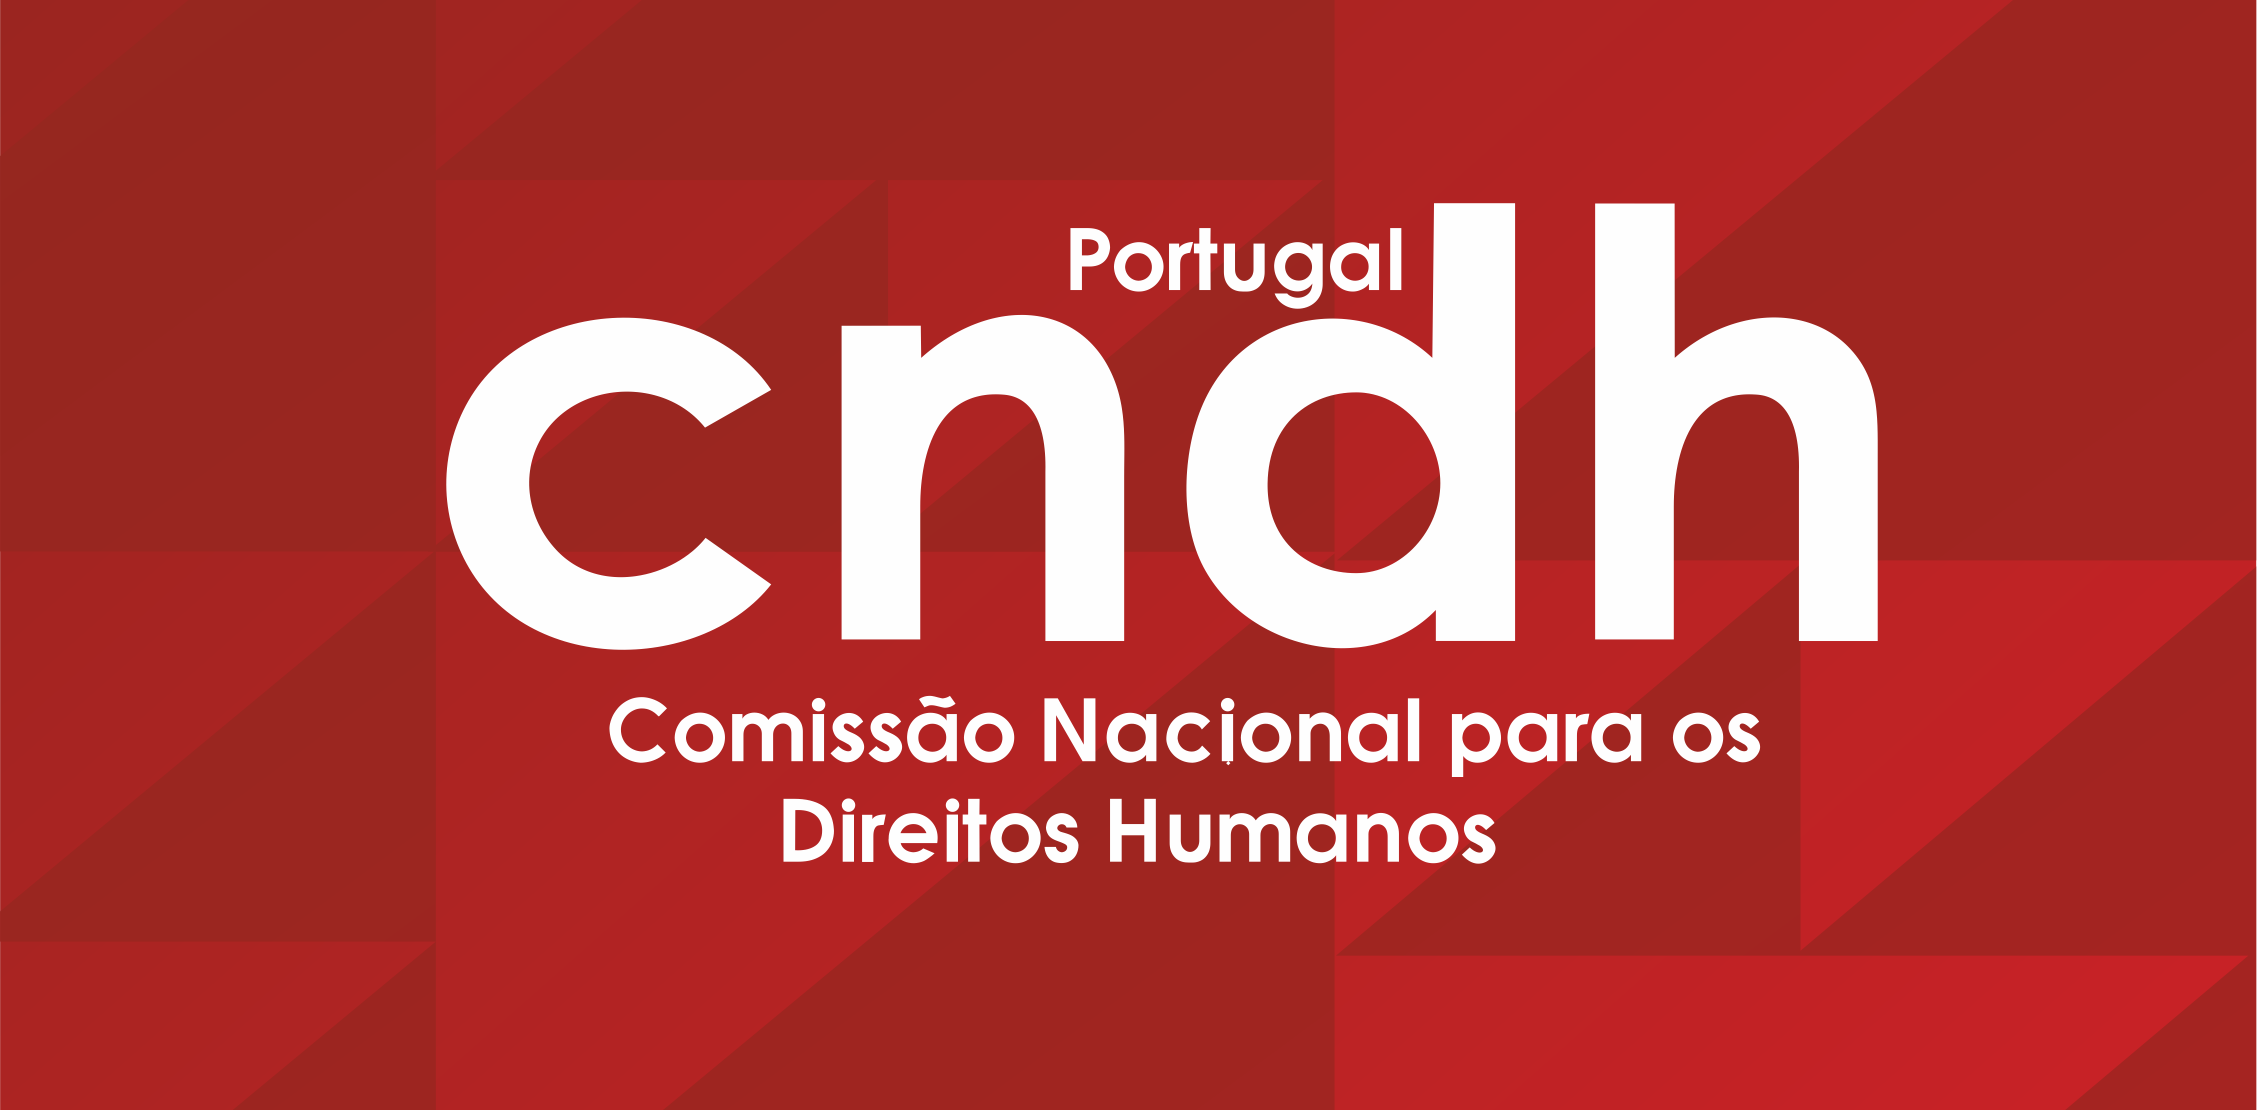 Logo National Comission for Human Rights Portugal